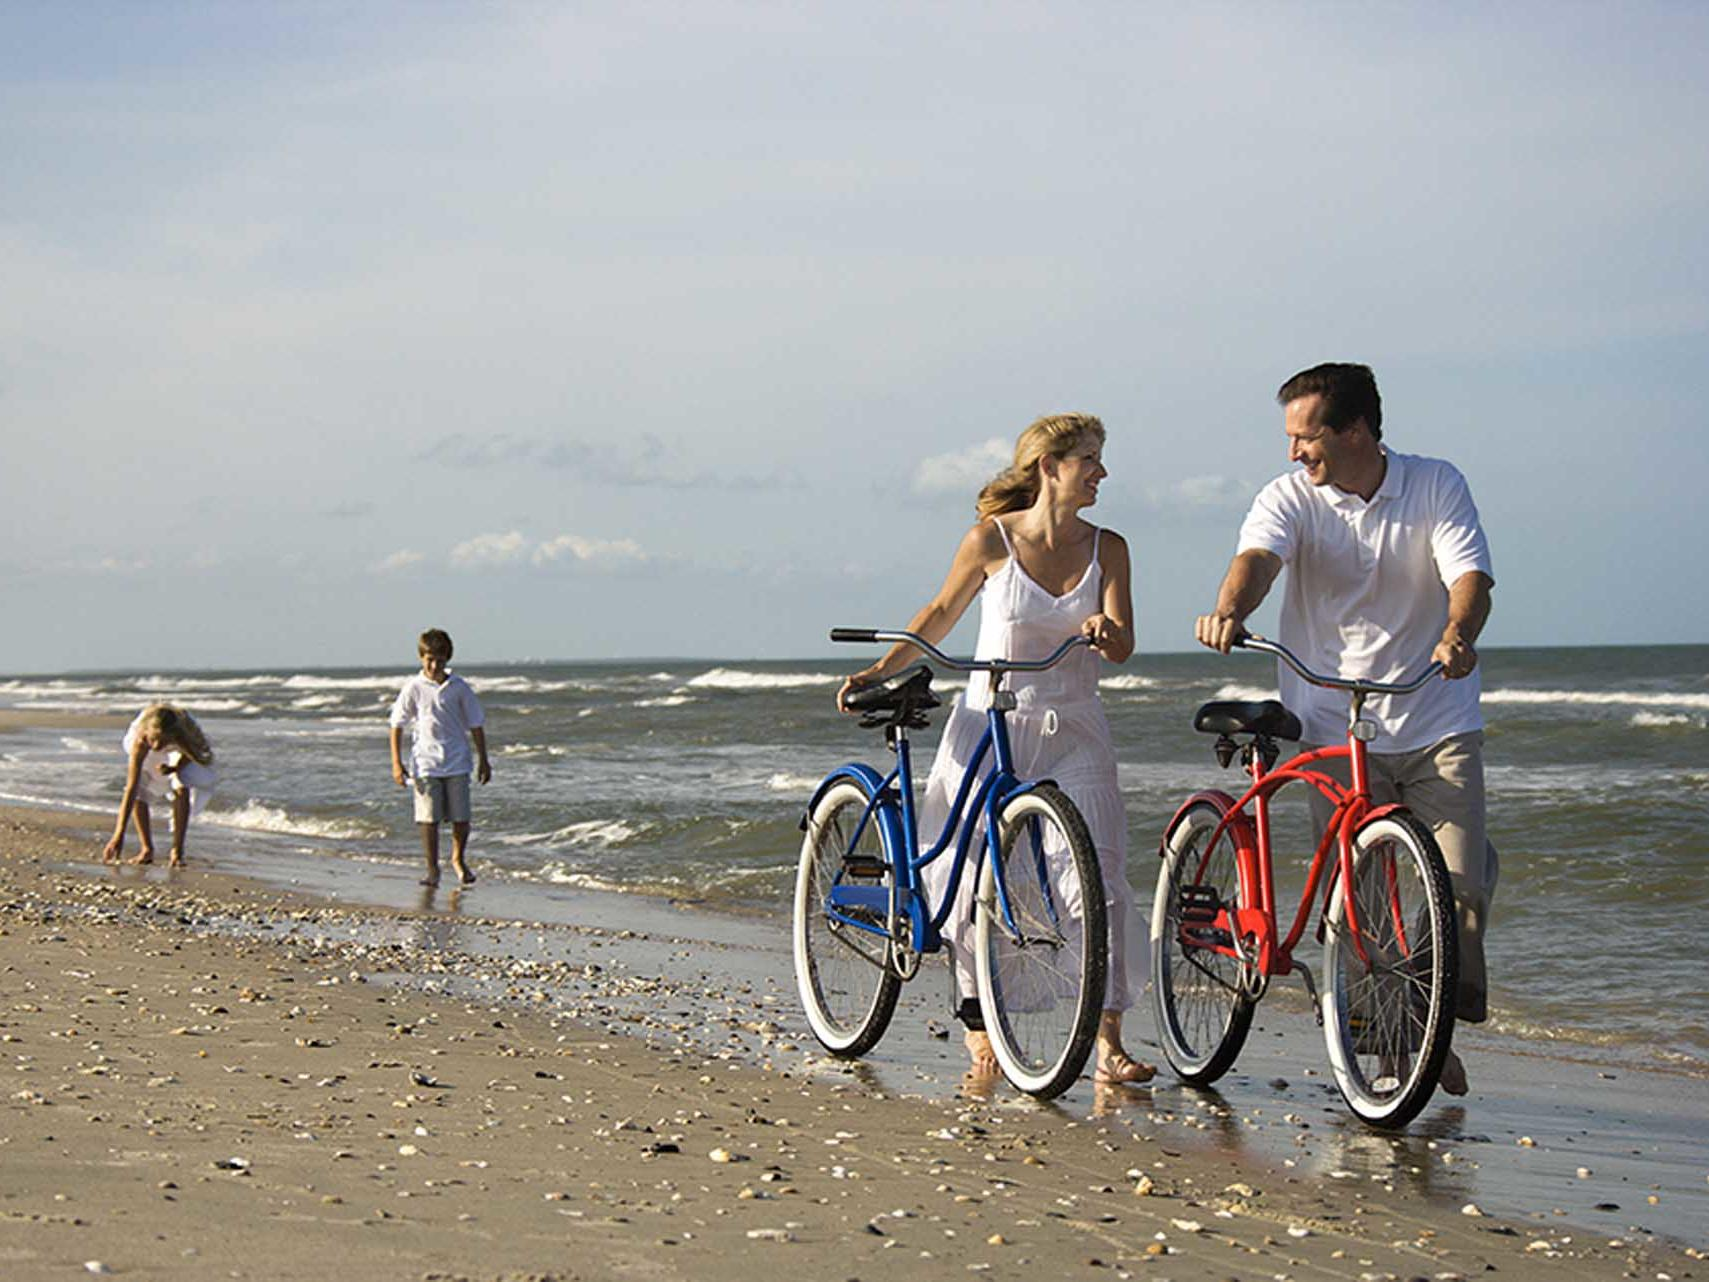 couple with bicycles on beach and kids walking behind